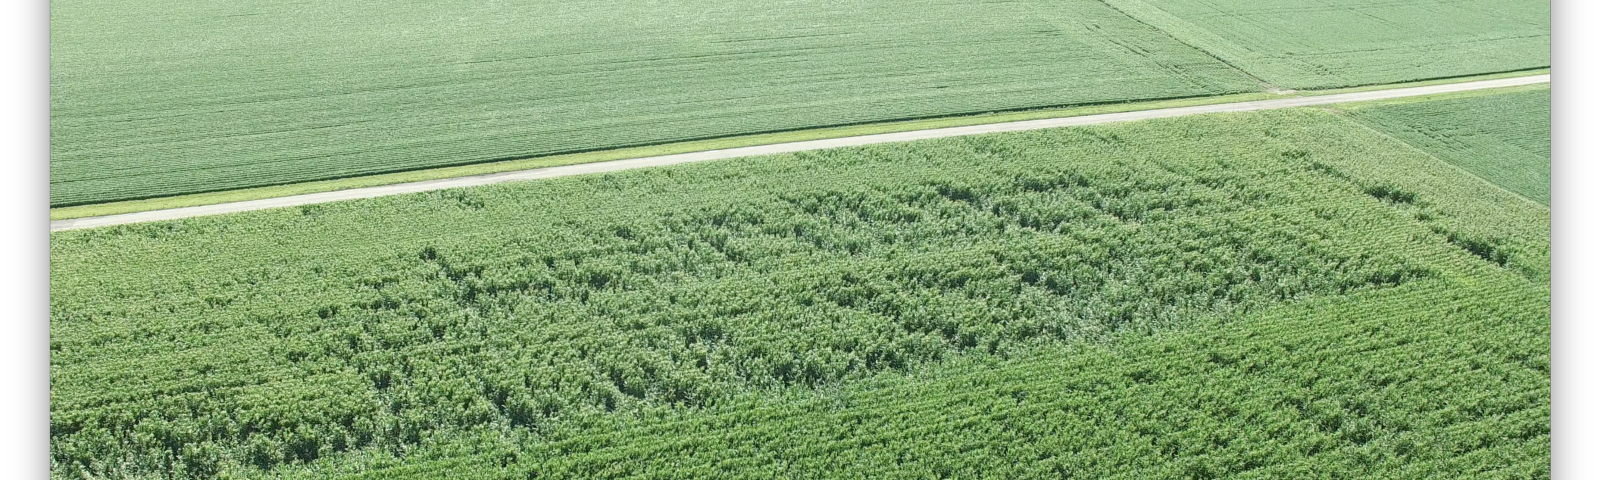 Insurance Dronedeploy S Blog